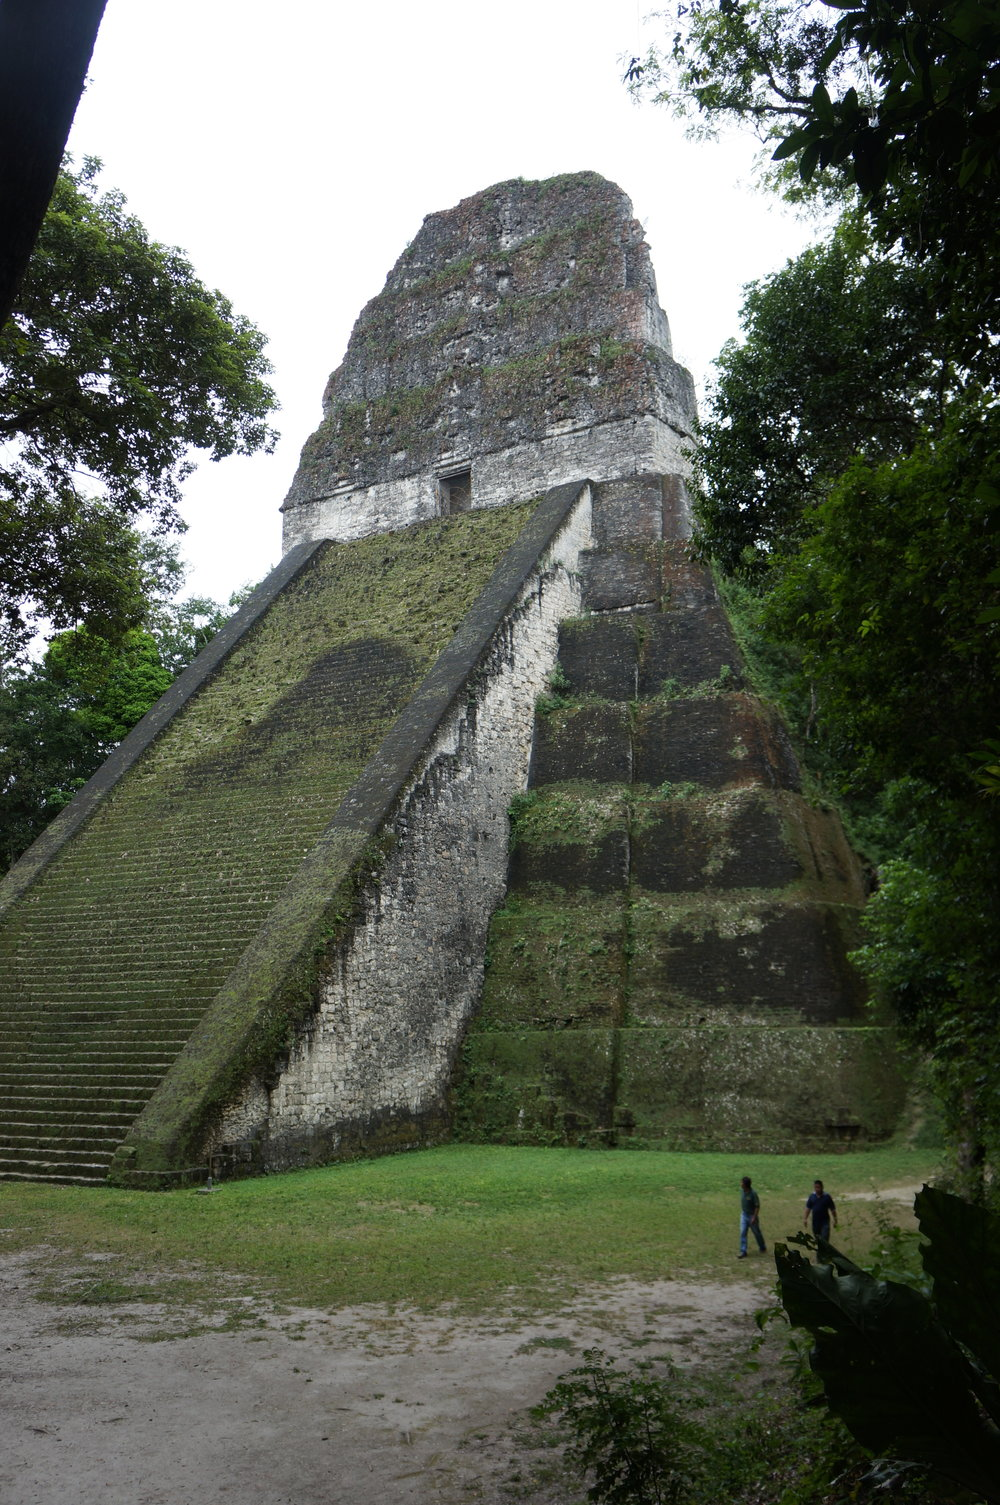 Temple V - Second highest structure in Tikal